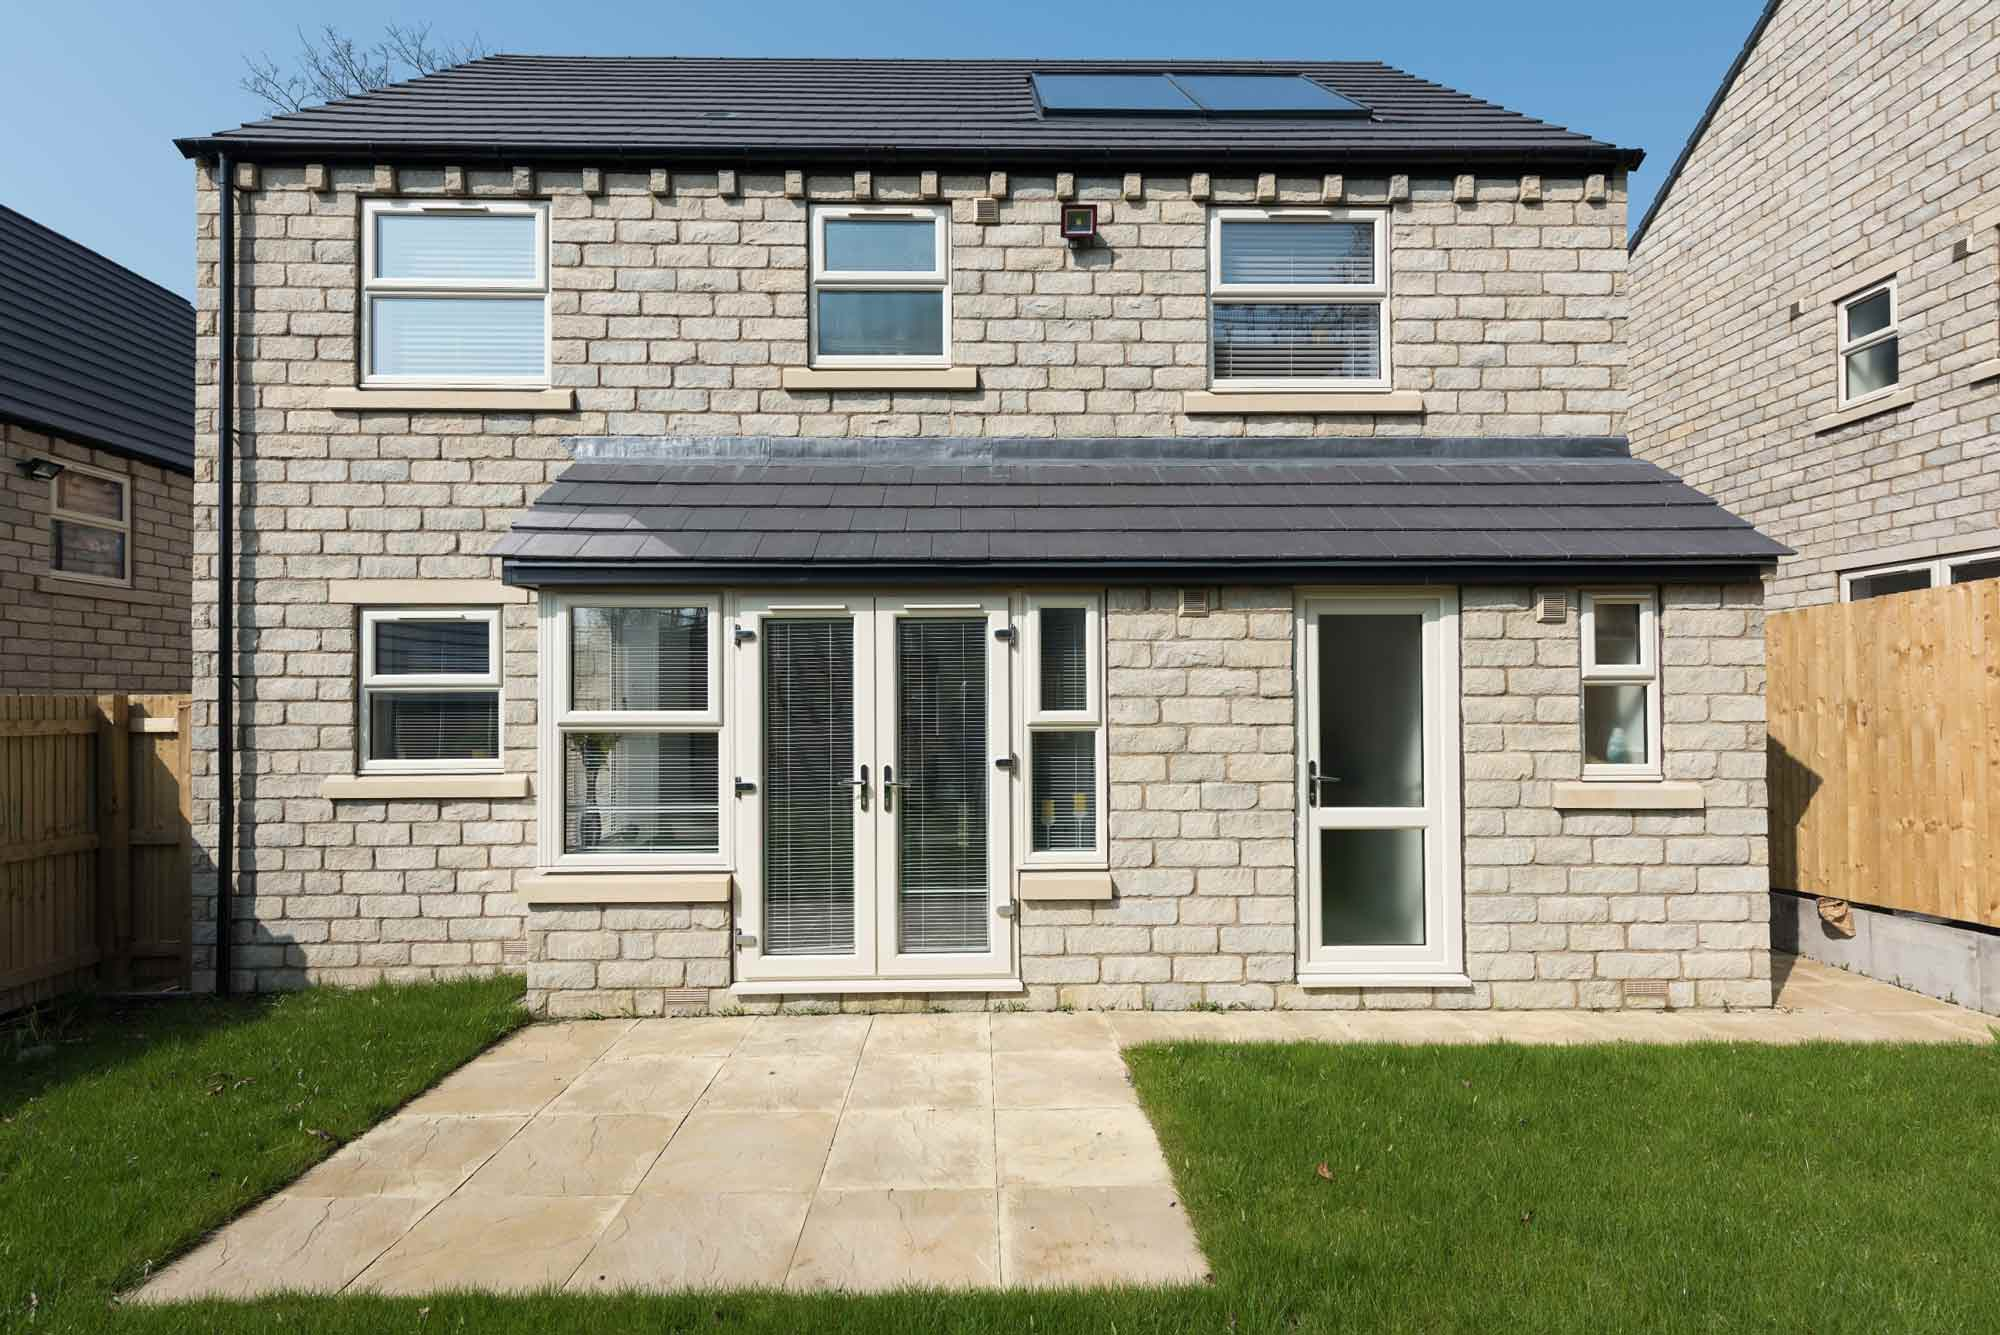 new build with pvcu windows